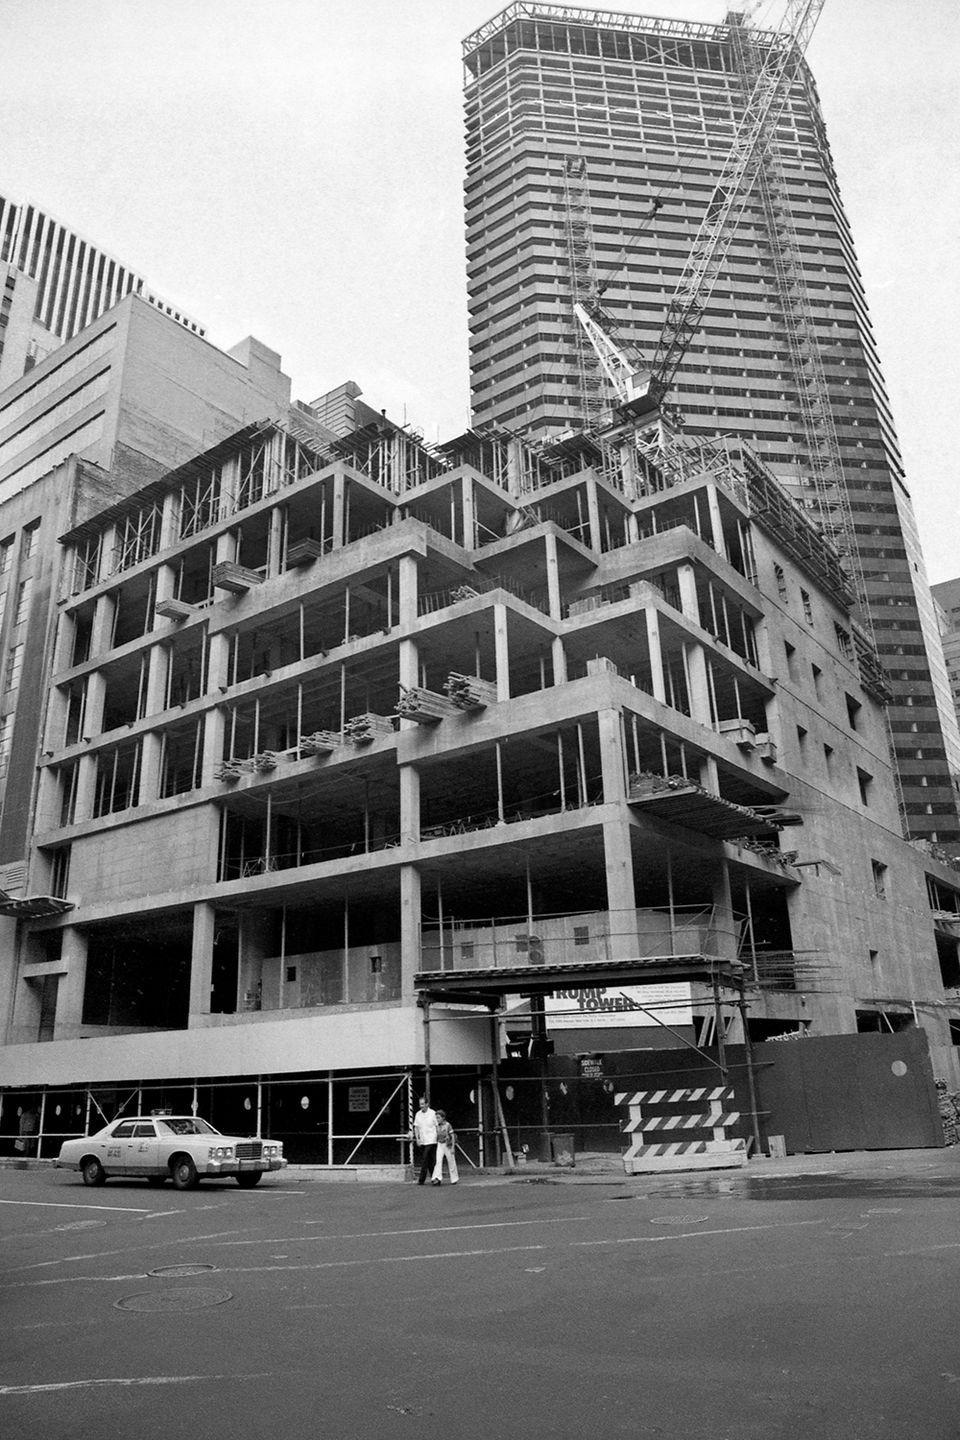 <p>The soon-to-be 68-story luxury Trump Tower condominium is under construction on Manhattan's East Side.</p>